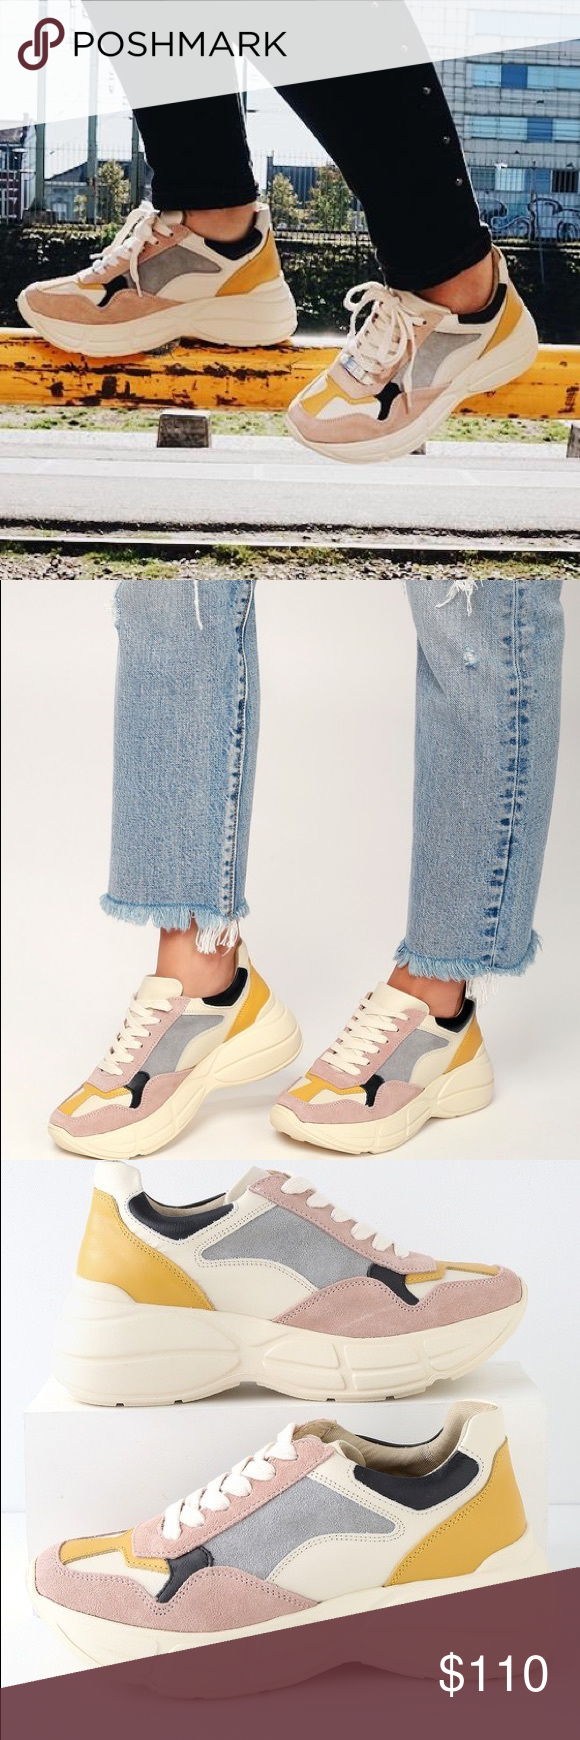 9b5f67dc5cc Steve Madden Memory Pink Multi Leather Sneakers Step out in runway style  with the Steve Madden